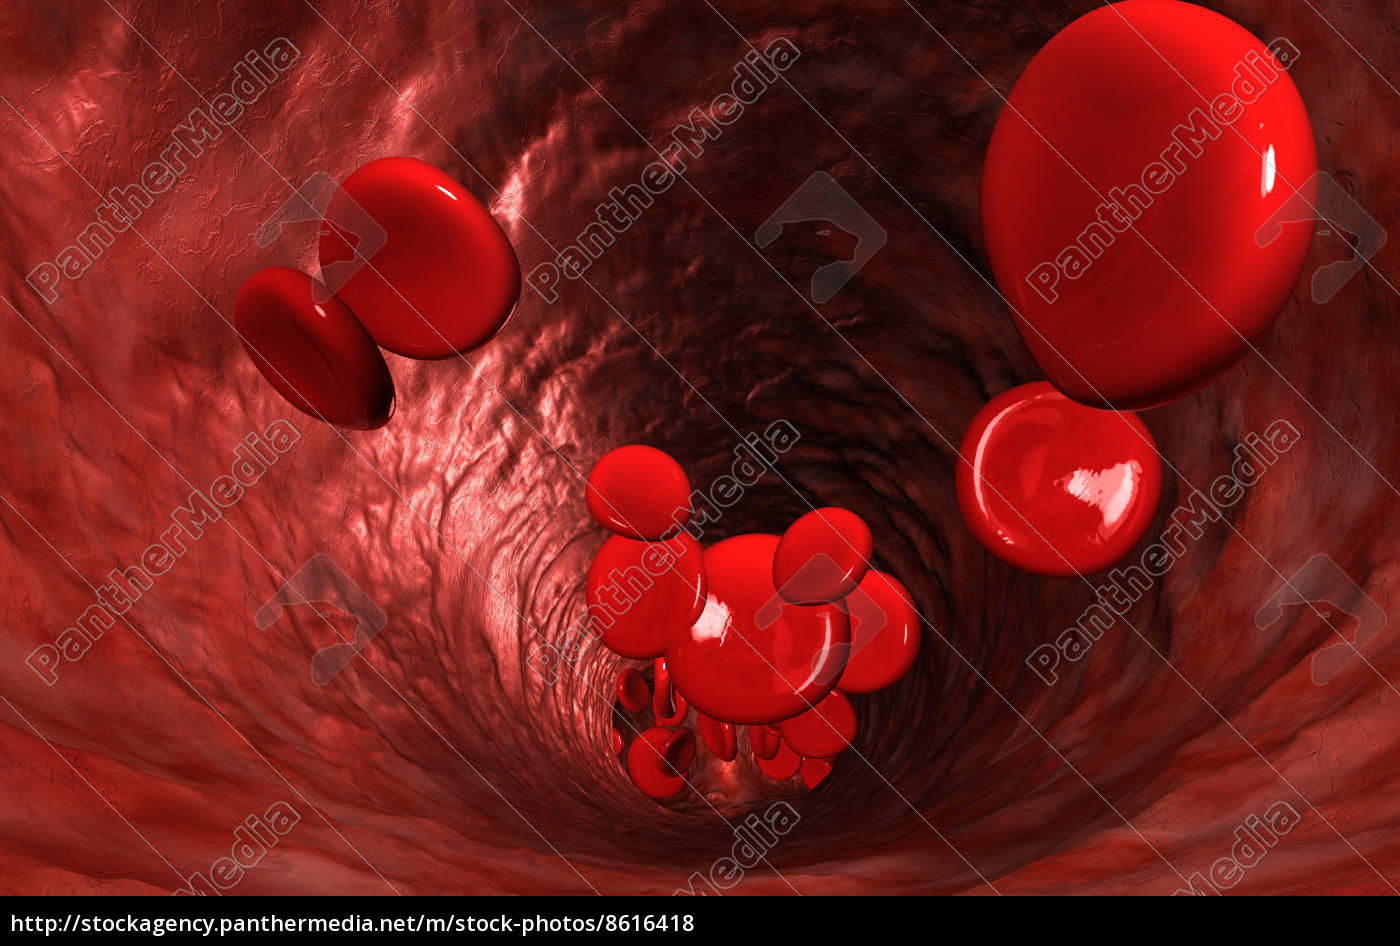 blood, cells, in, a, vein - 8616418